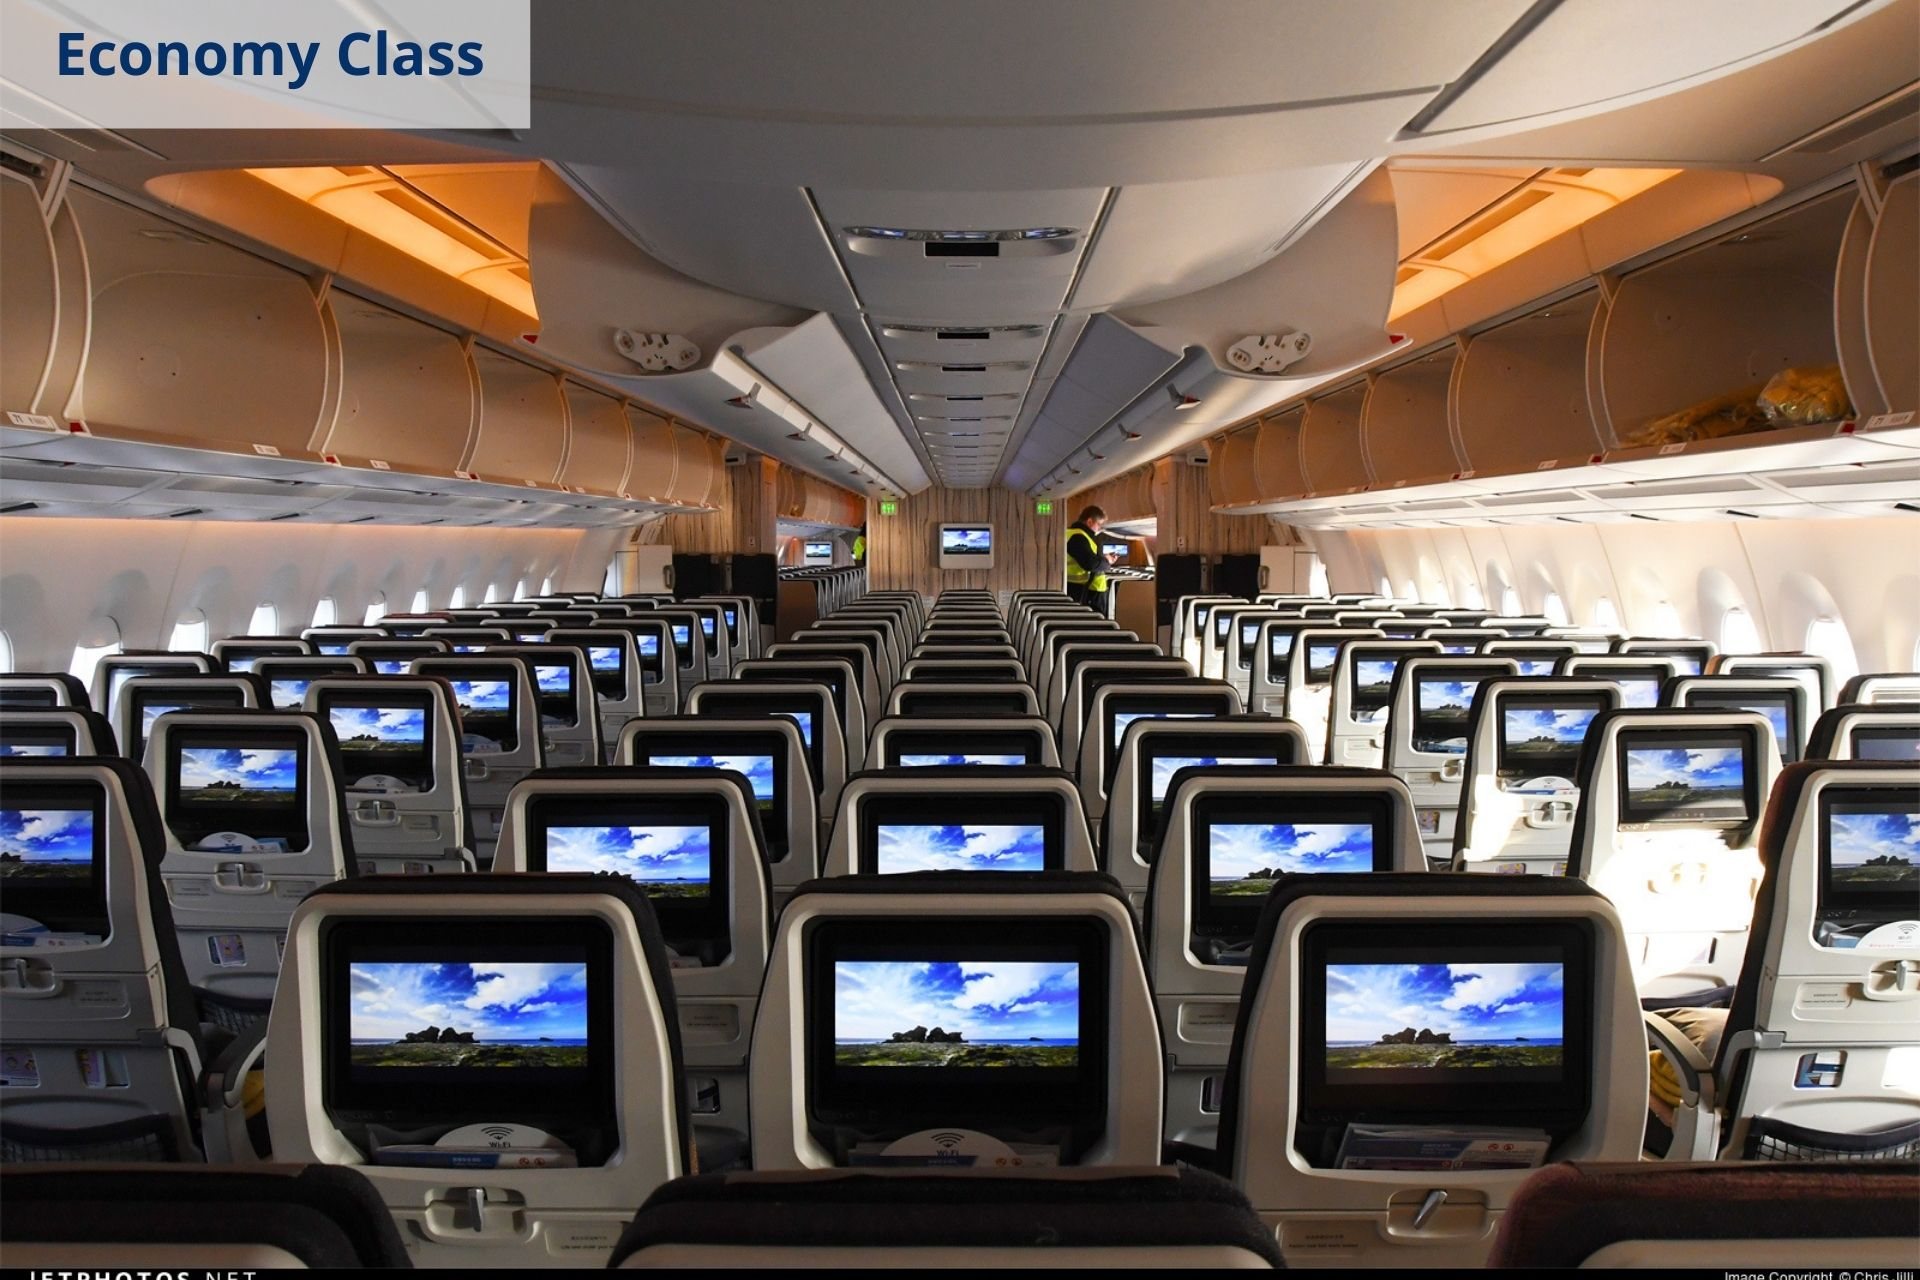 China Airlines economy class